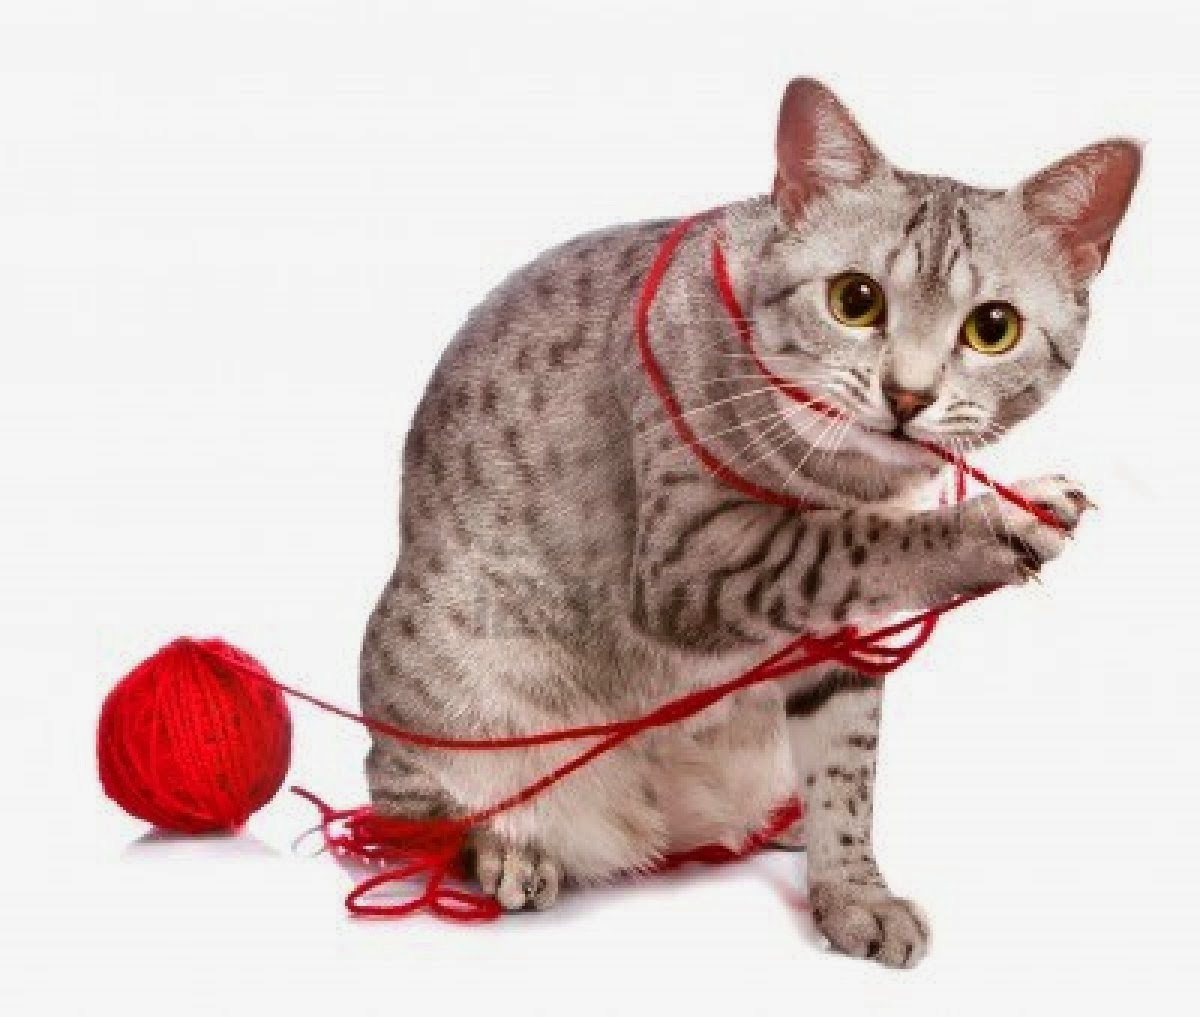 The Best Holiday Gifts for Cats - A Ball of Yarn | Animals ...